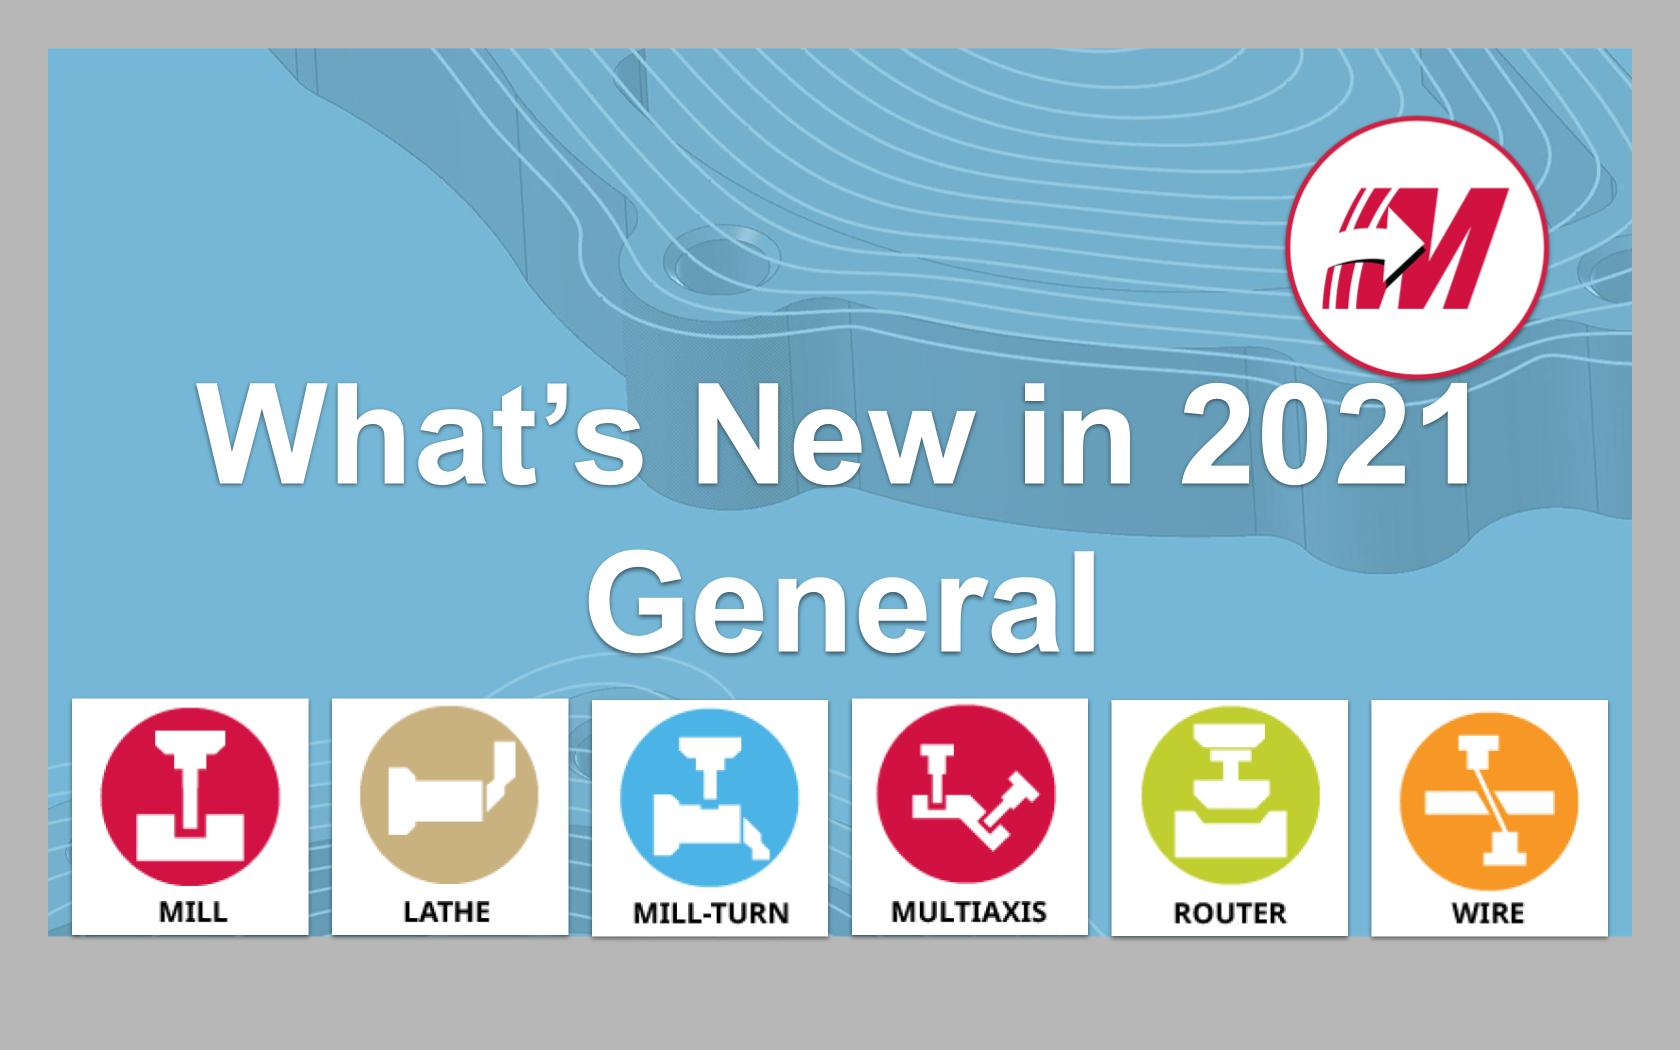 What's New in 2021 - General